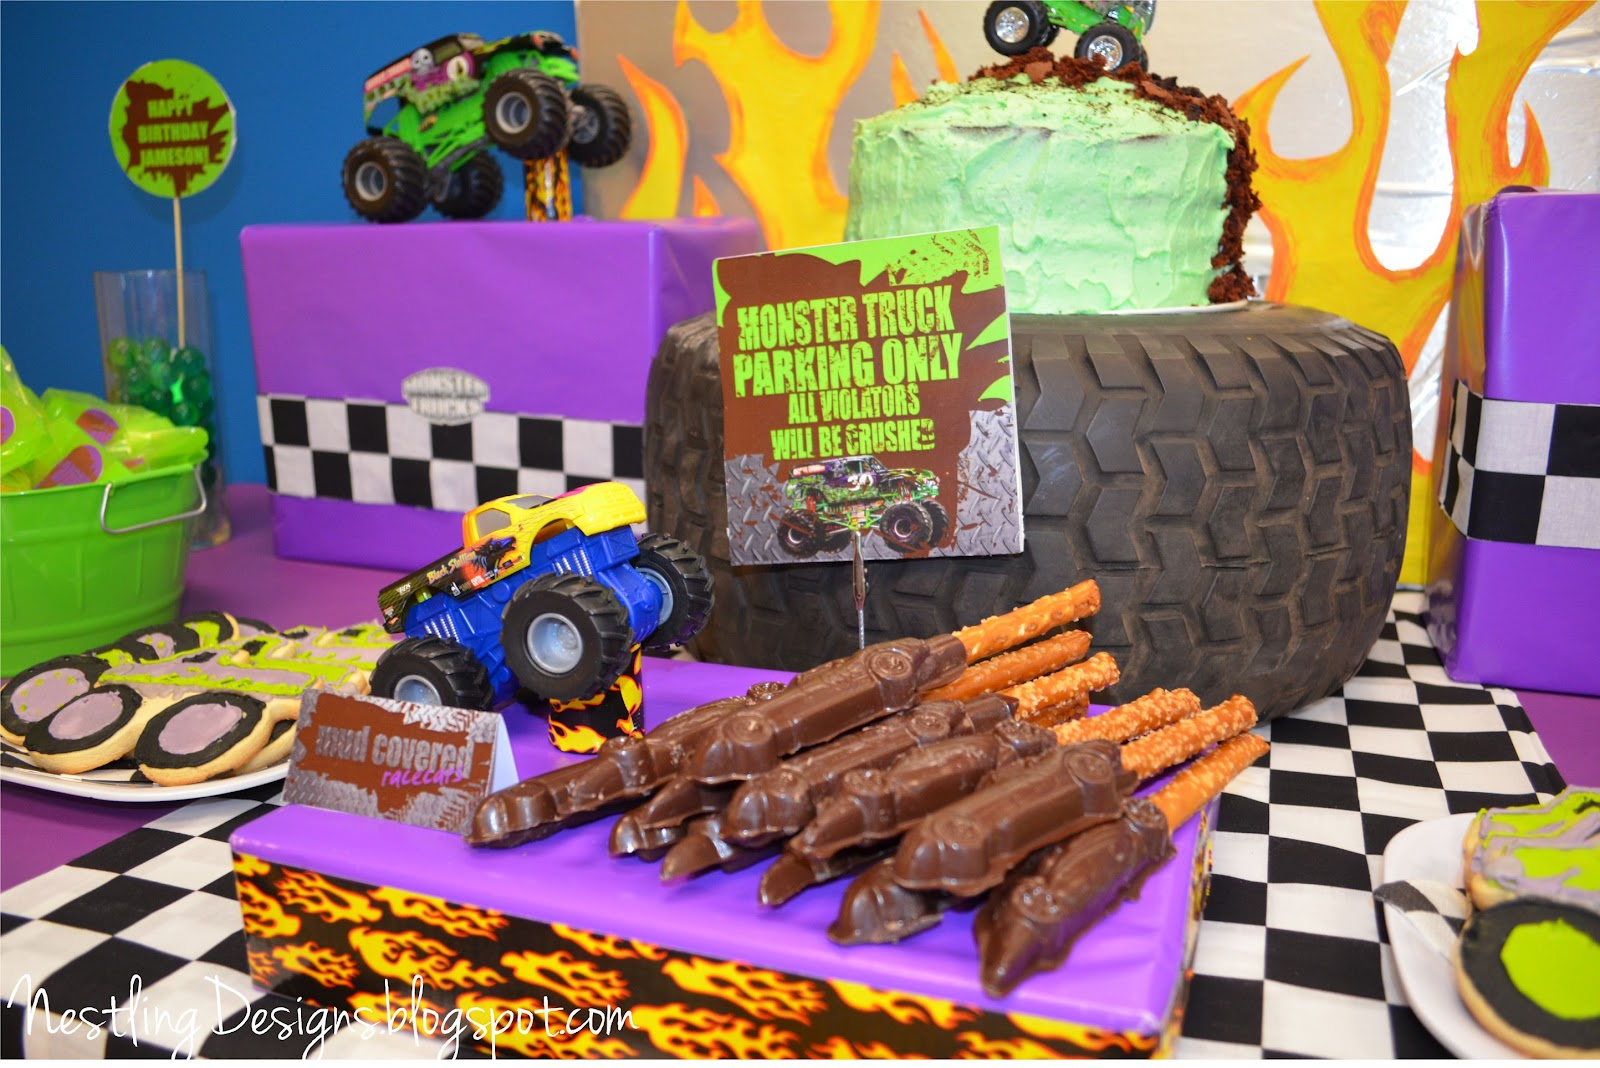 Nestling: Monster Truck Party :: Reveal!